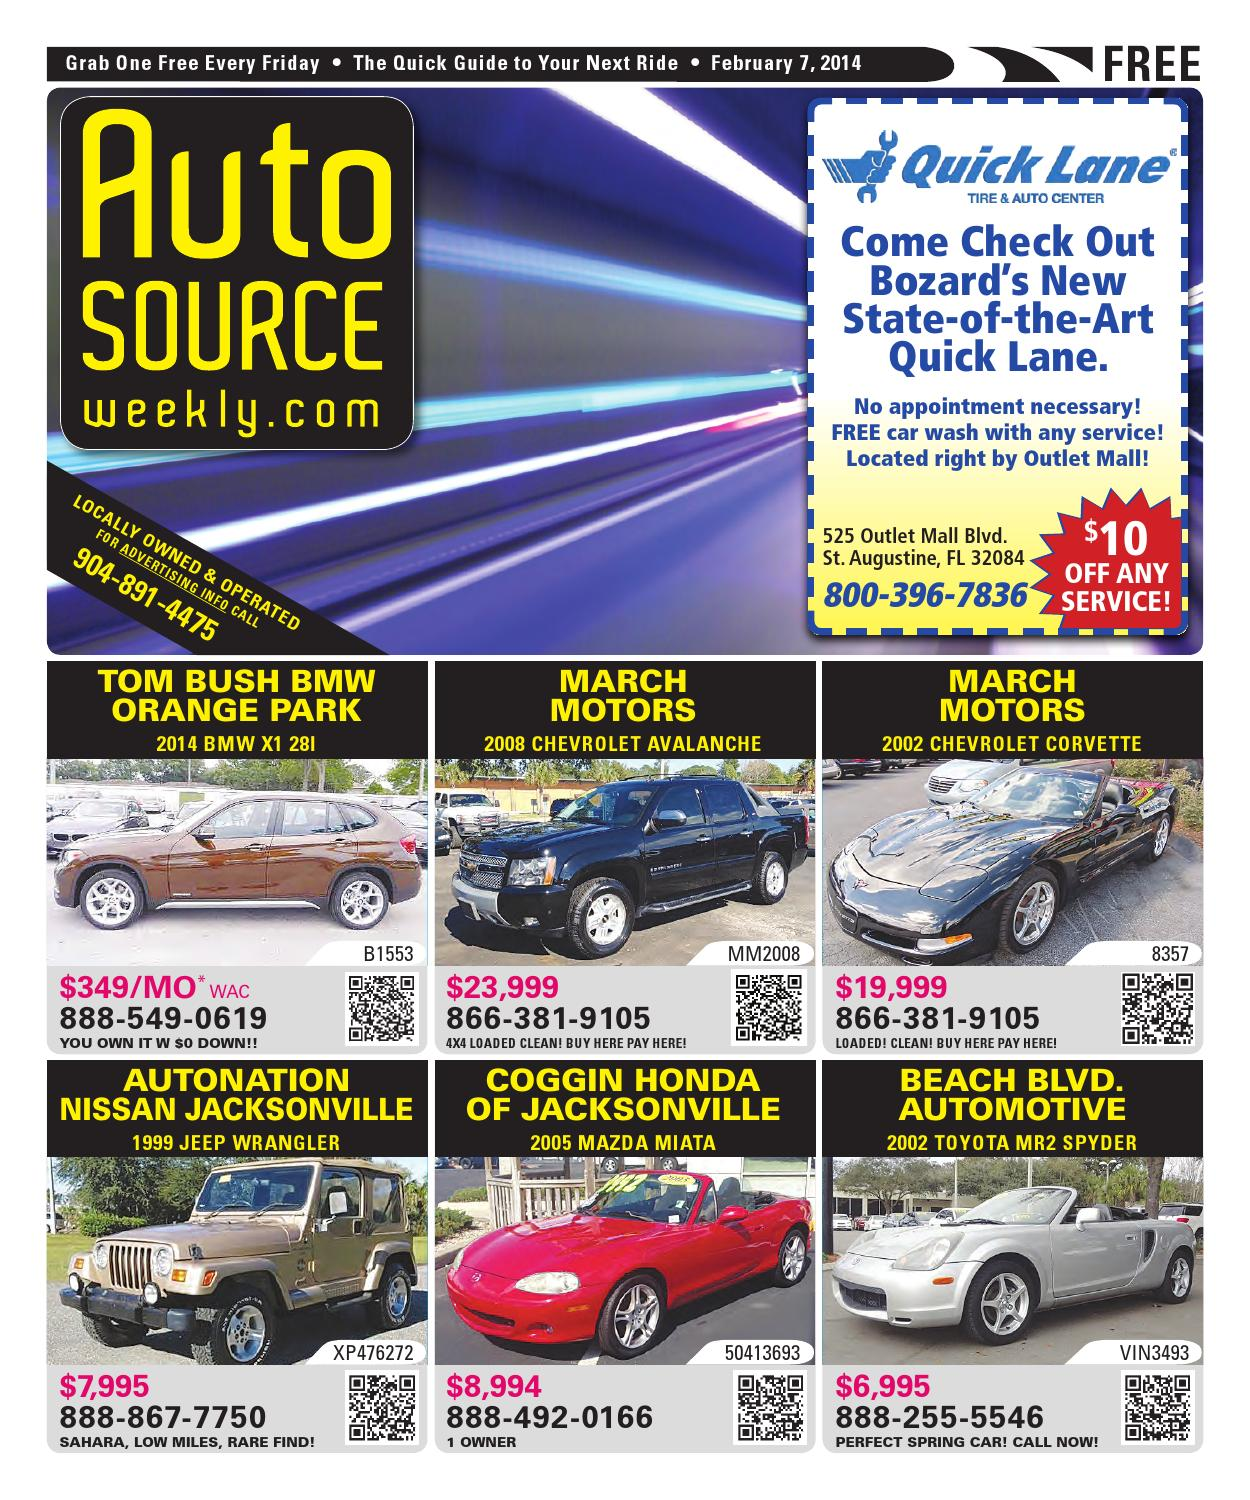 auto source weekly by auto source weekly issuu. Black Bedroom Furniture Sets. Home Design Ideas